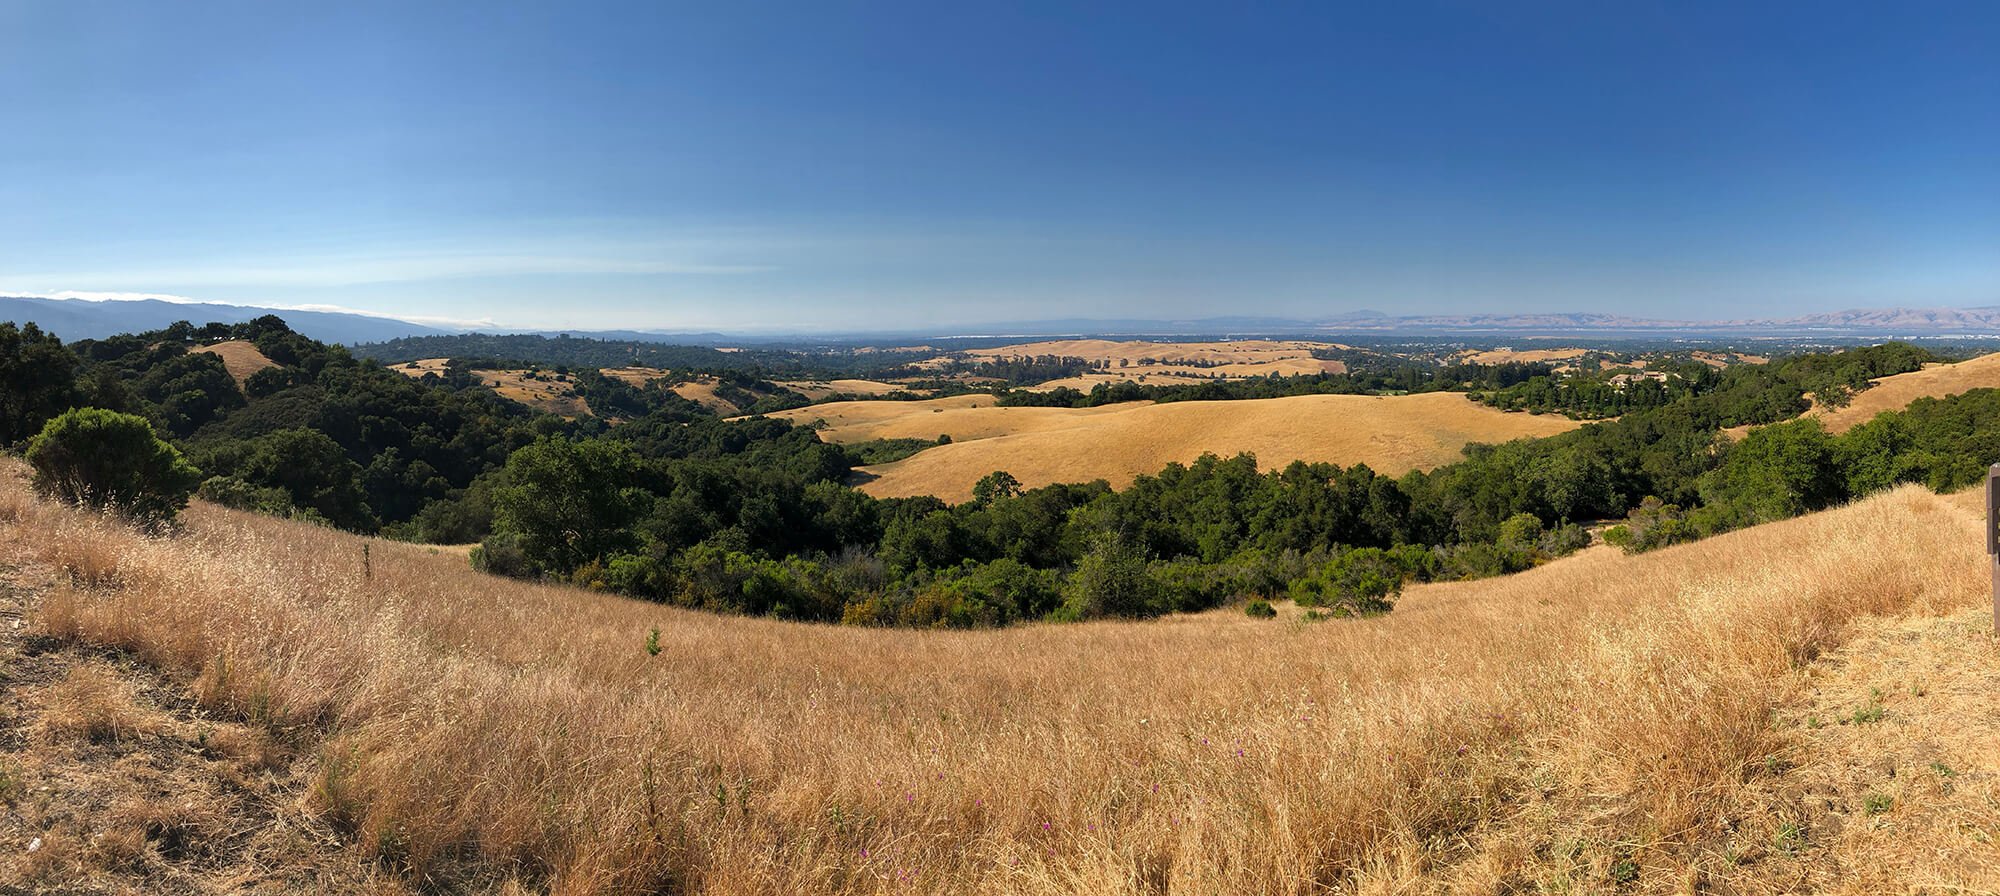 Panorama of golden grass from Foothills park in Palo Alto